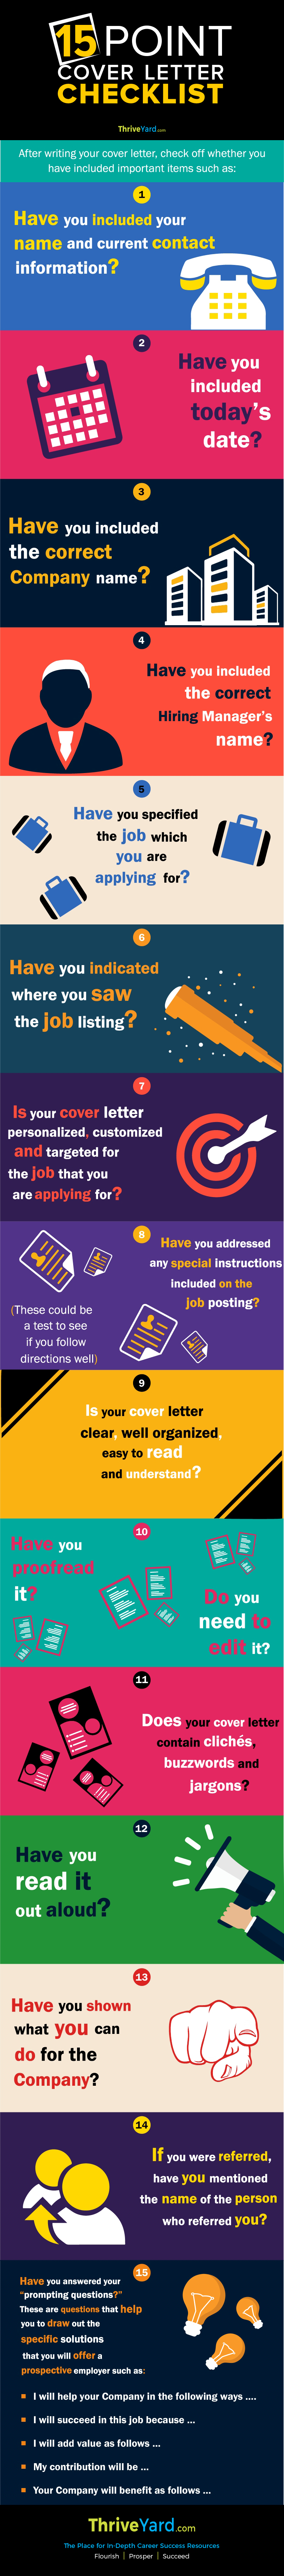 15 Point Cover Letter Checklist - Infographic